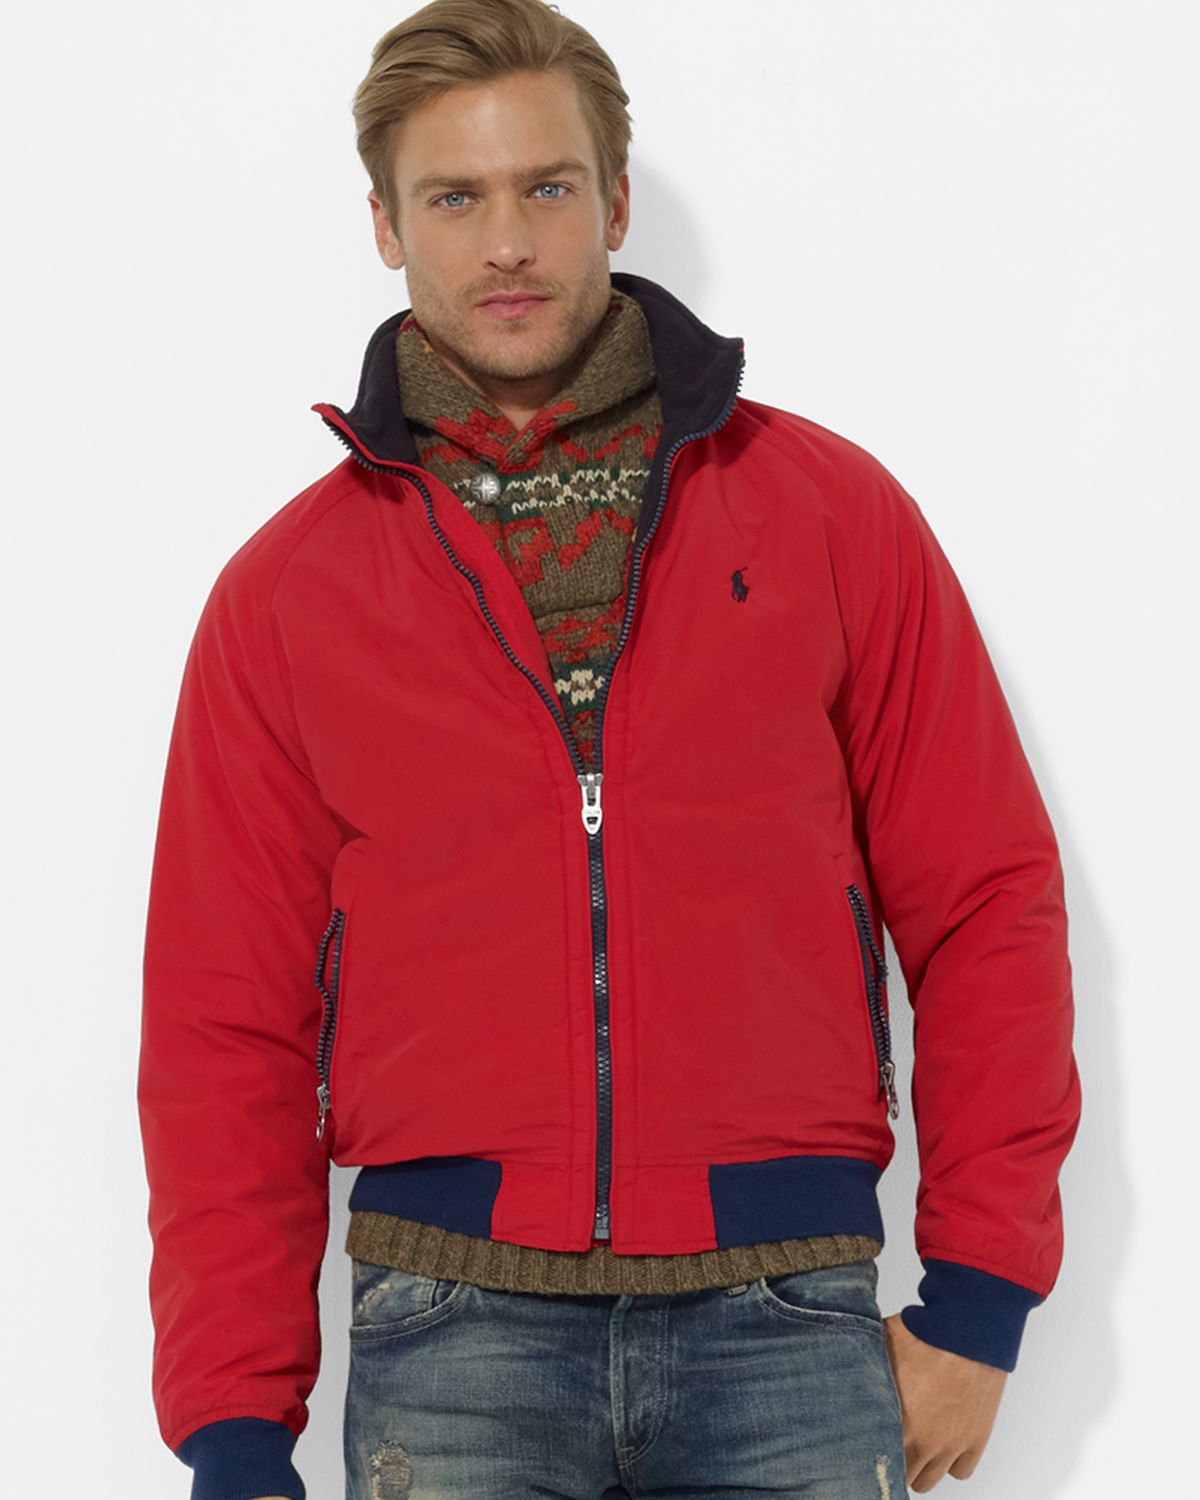 Ralph Lauren Fashion Show At New York: Ralph Lauren Polo Portage Jacket In Red For Men